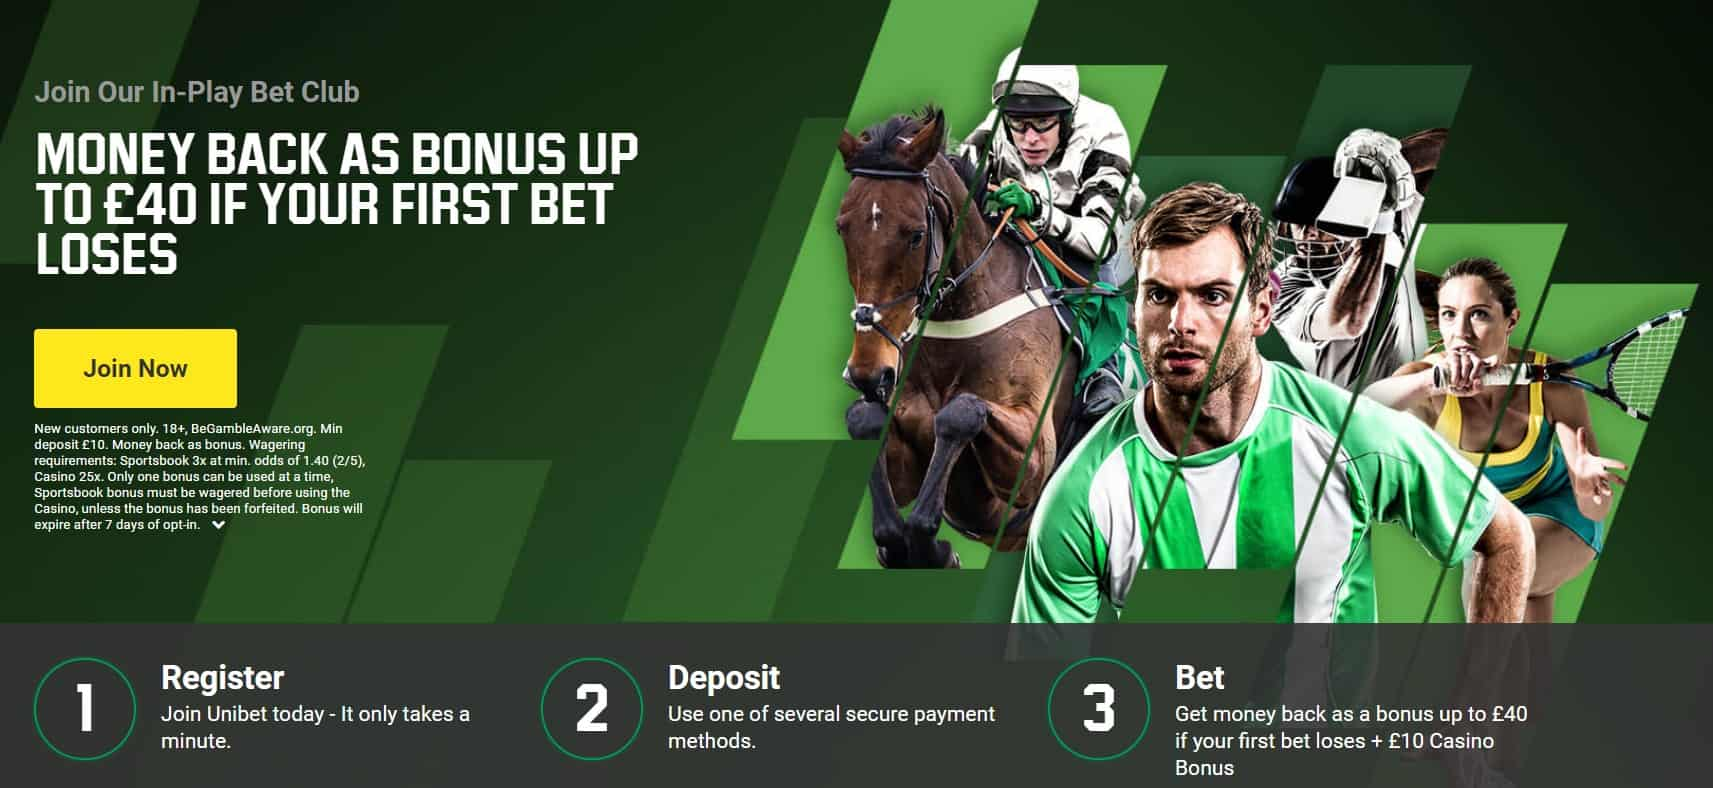 Unibet Sports Betting Welcome Offer Money Back Up to £40 First Bet Insurance